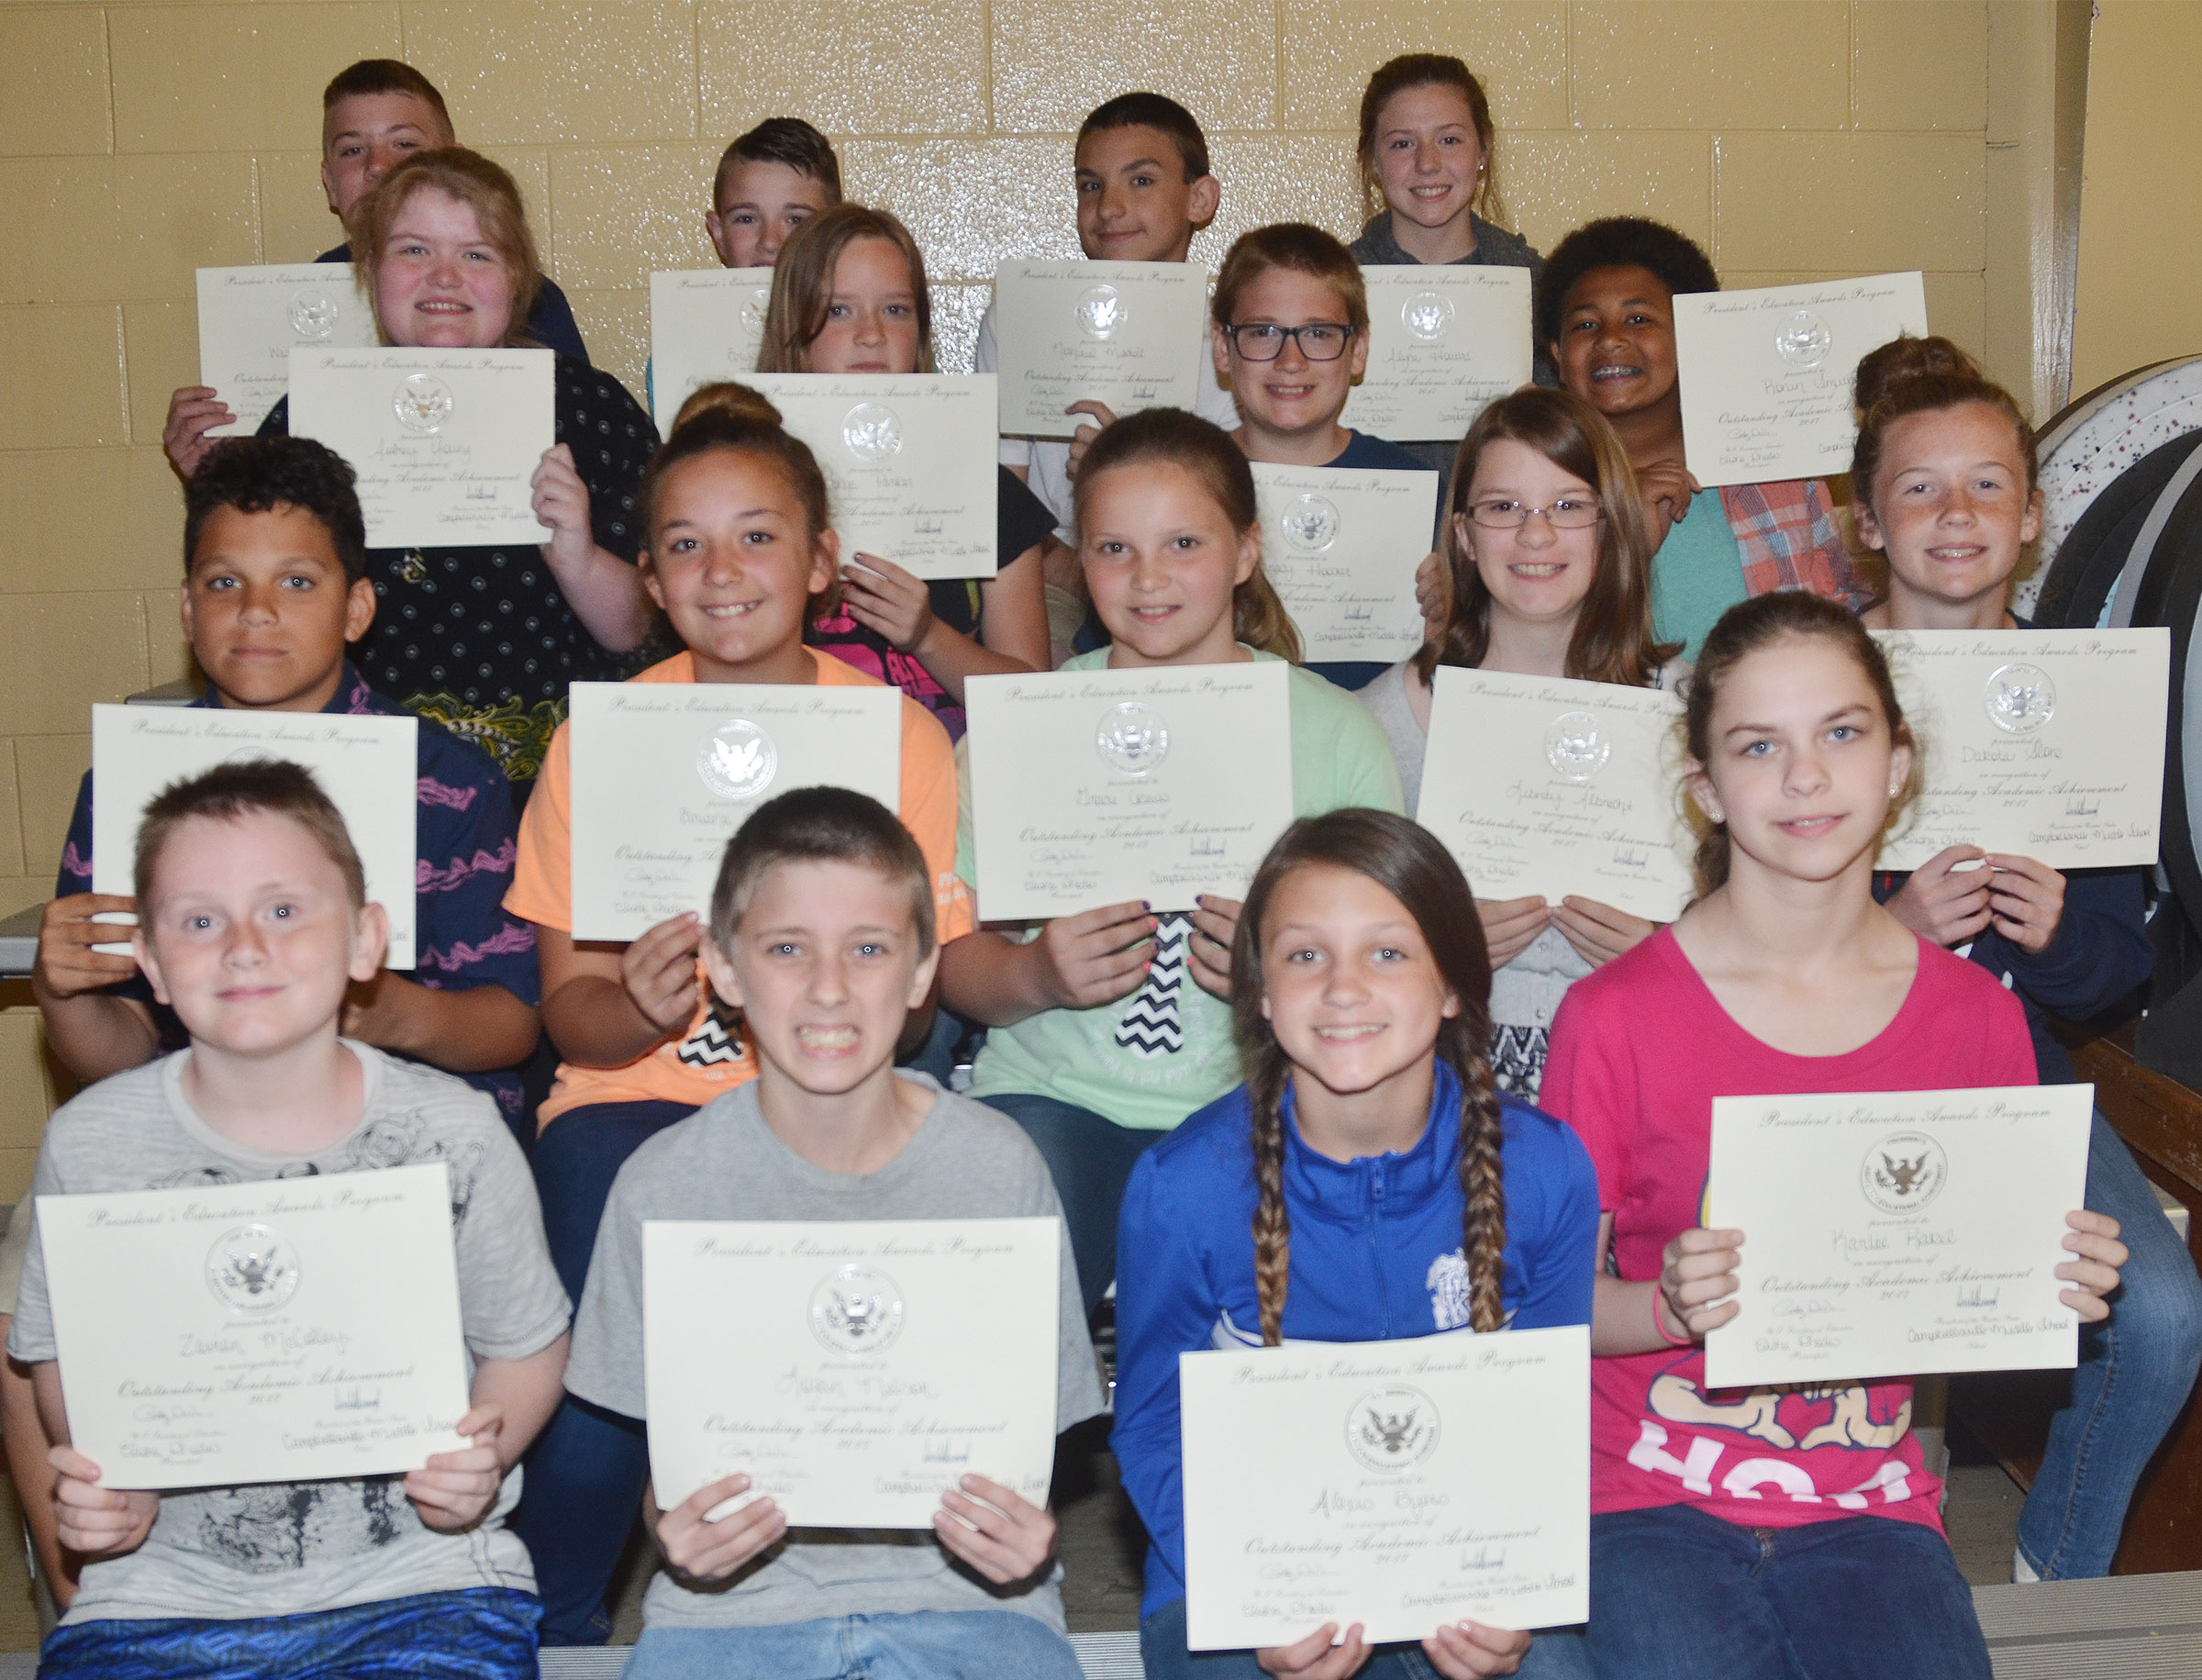 Sixth-grade president's award for educational achievement winners are, from left, front, Zavian McColley, seventh-grader Logan Nelson, Alexis Byers and Karlee Rakel. Second row, Kaydon Taylor, Briana Davis, Gracie Crews, Liberty Albrecht and Dakota Slone. Third row, Aubrey Young, Tonya Parker, Brady Hoosier and Ronin Smith. Back, Wesley Reynolds, Bryce Newton, Nathaniel Mitchell and Alysa Howard.